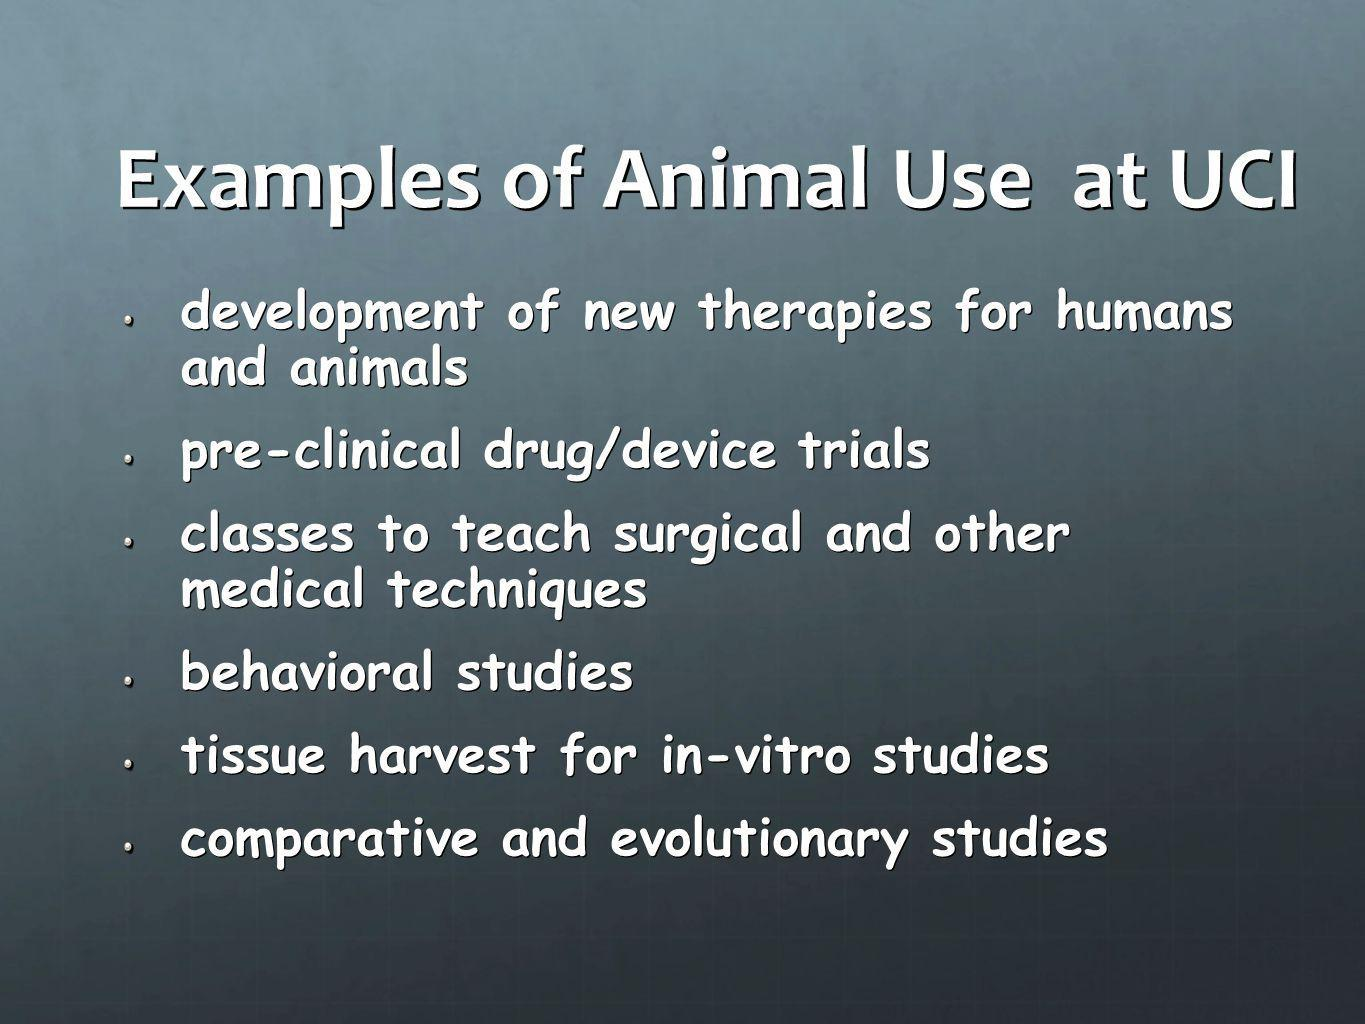 Examples of Animal Use at UCI